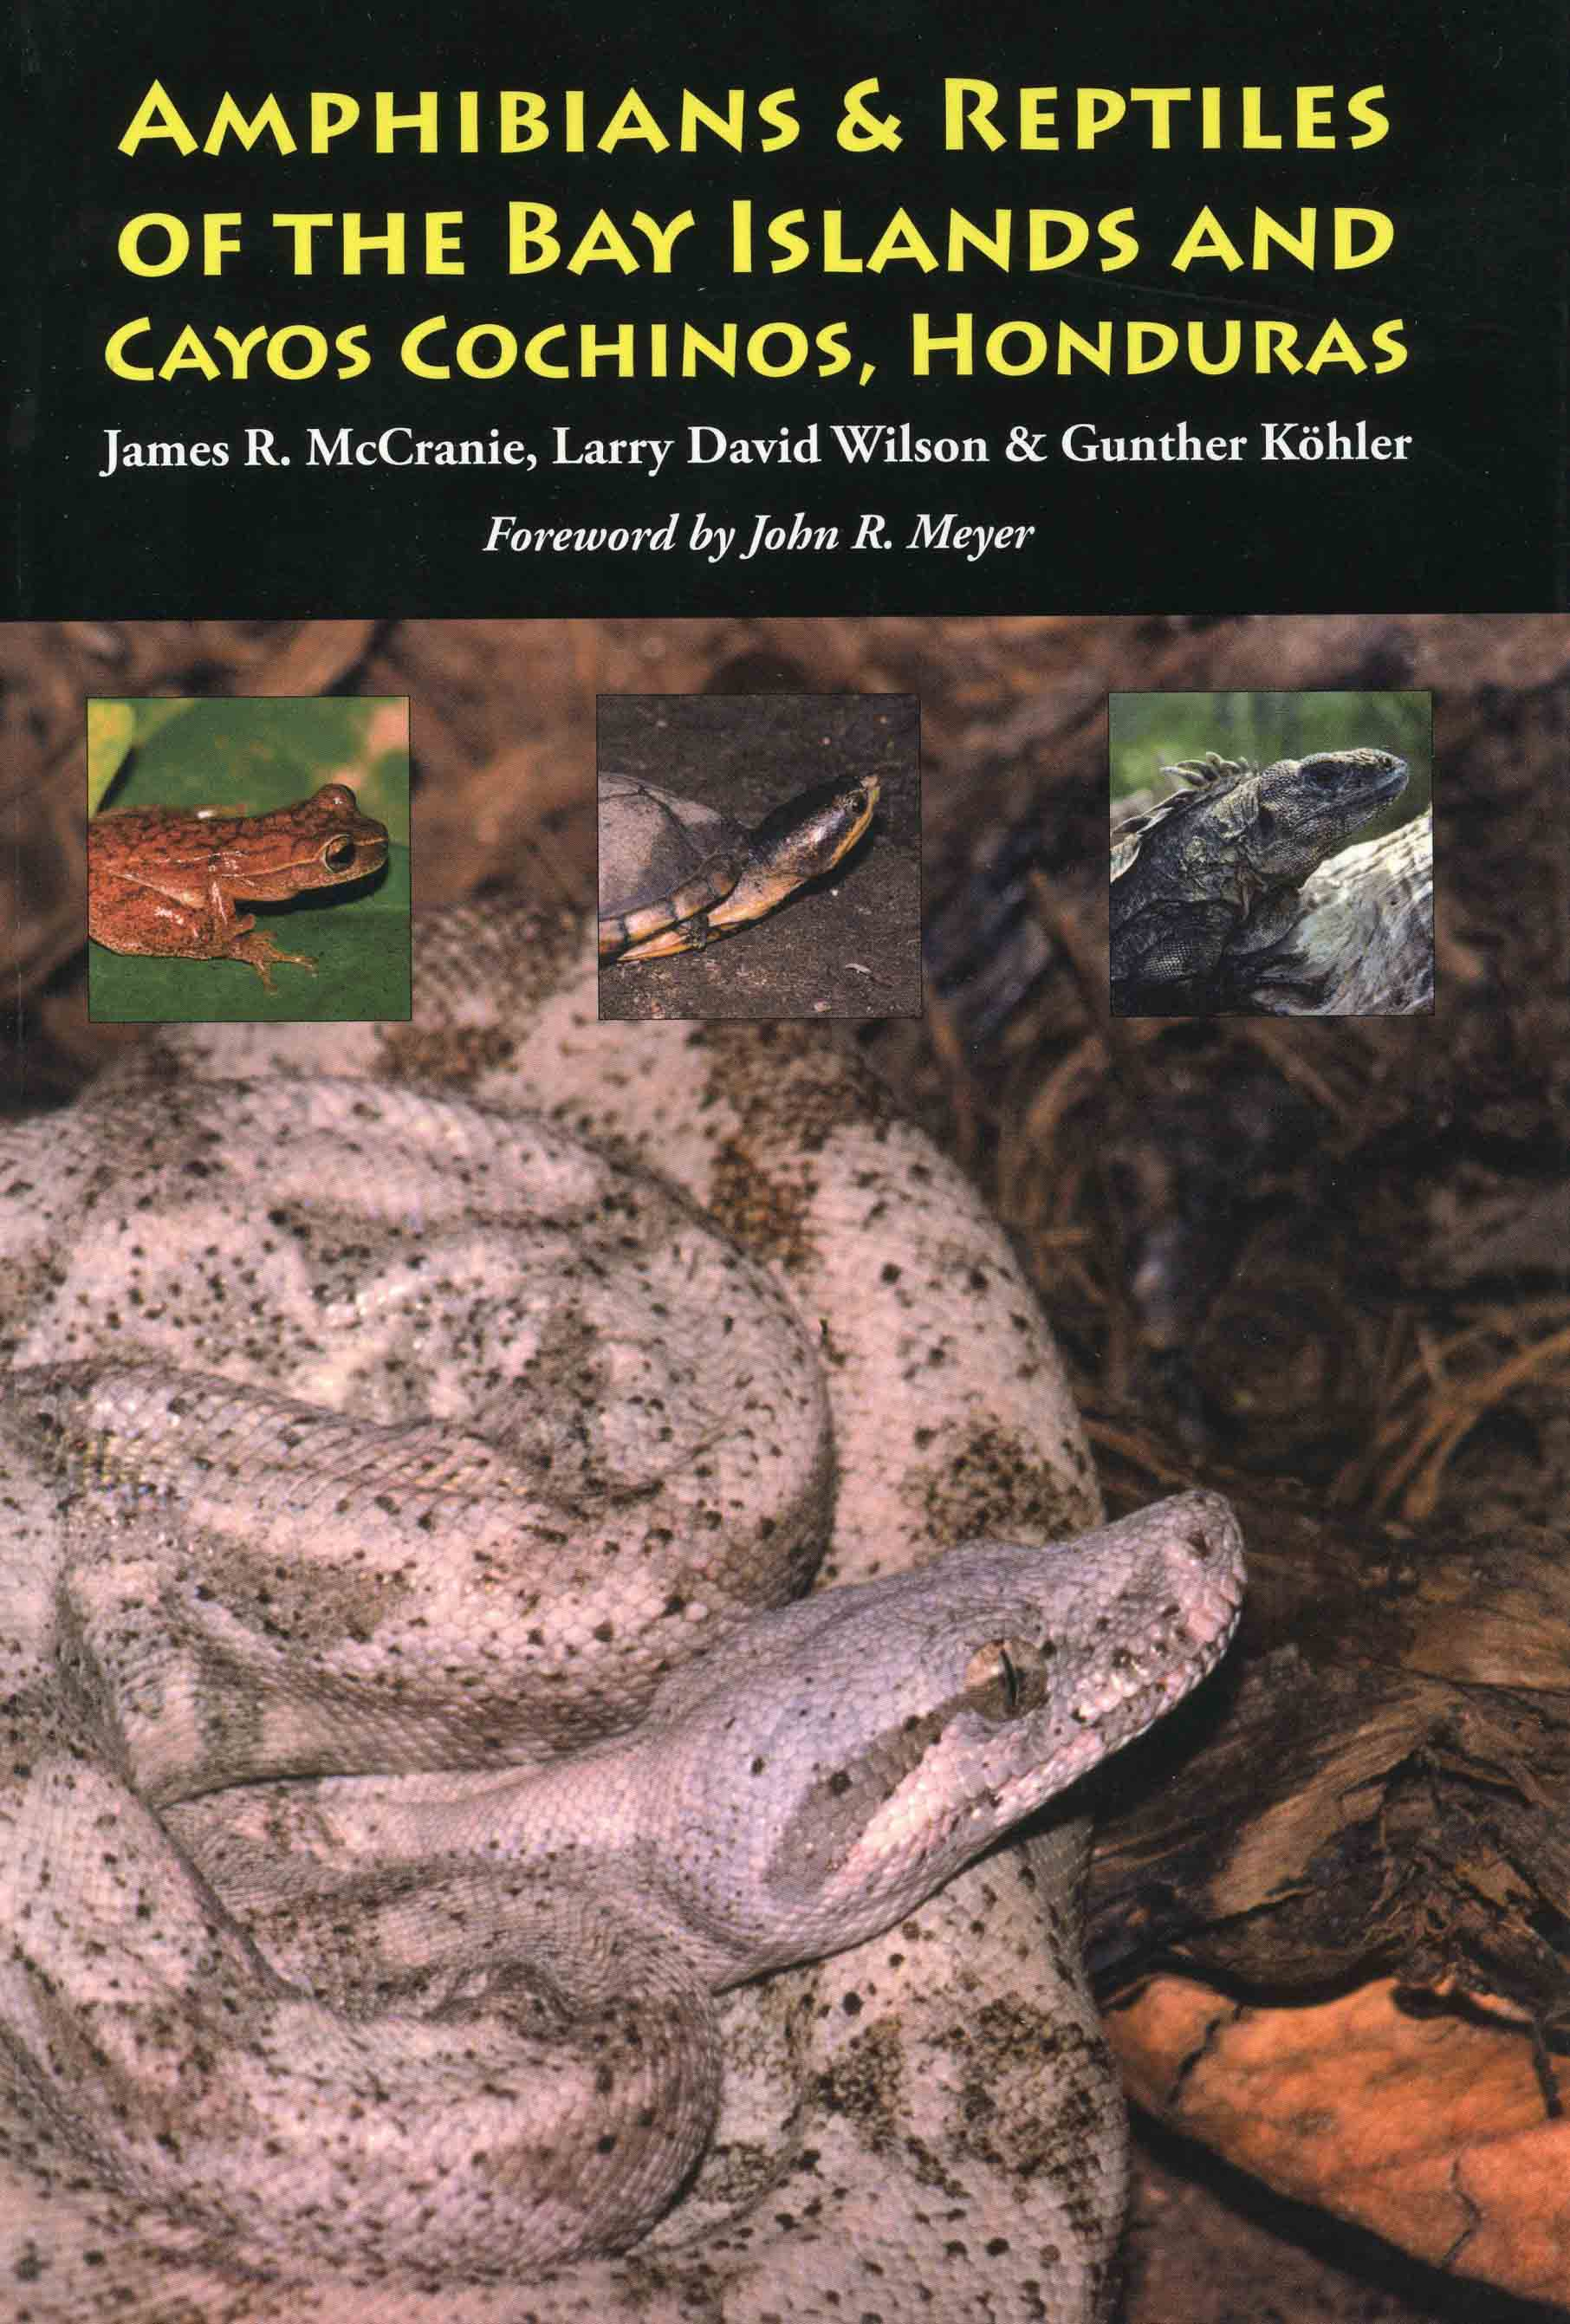 Image for Amphibians & Reptiles of the Bay Islands and Cayos Cochinos